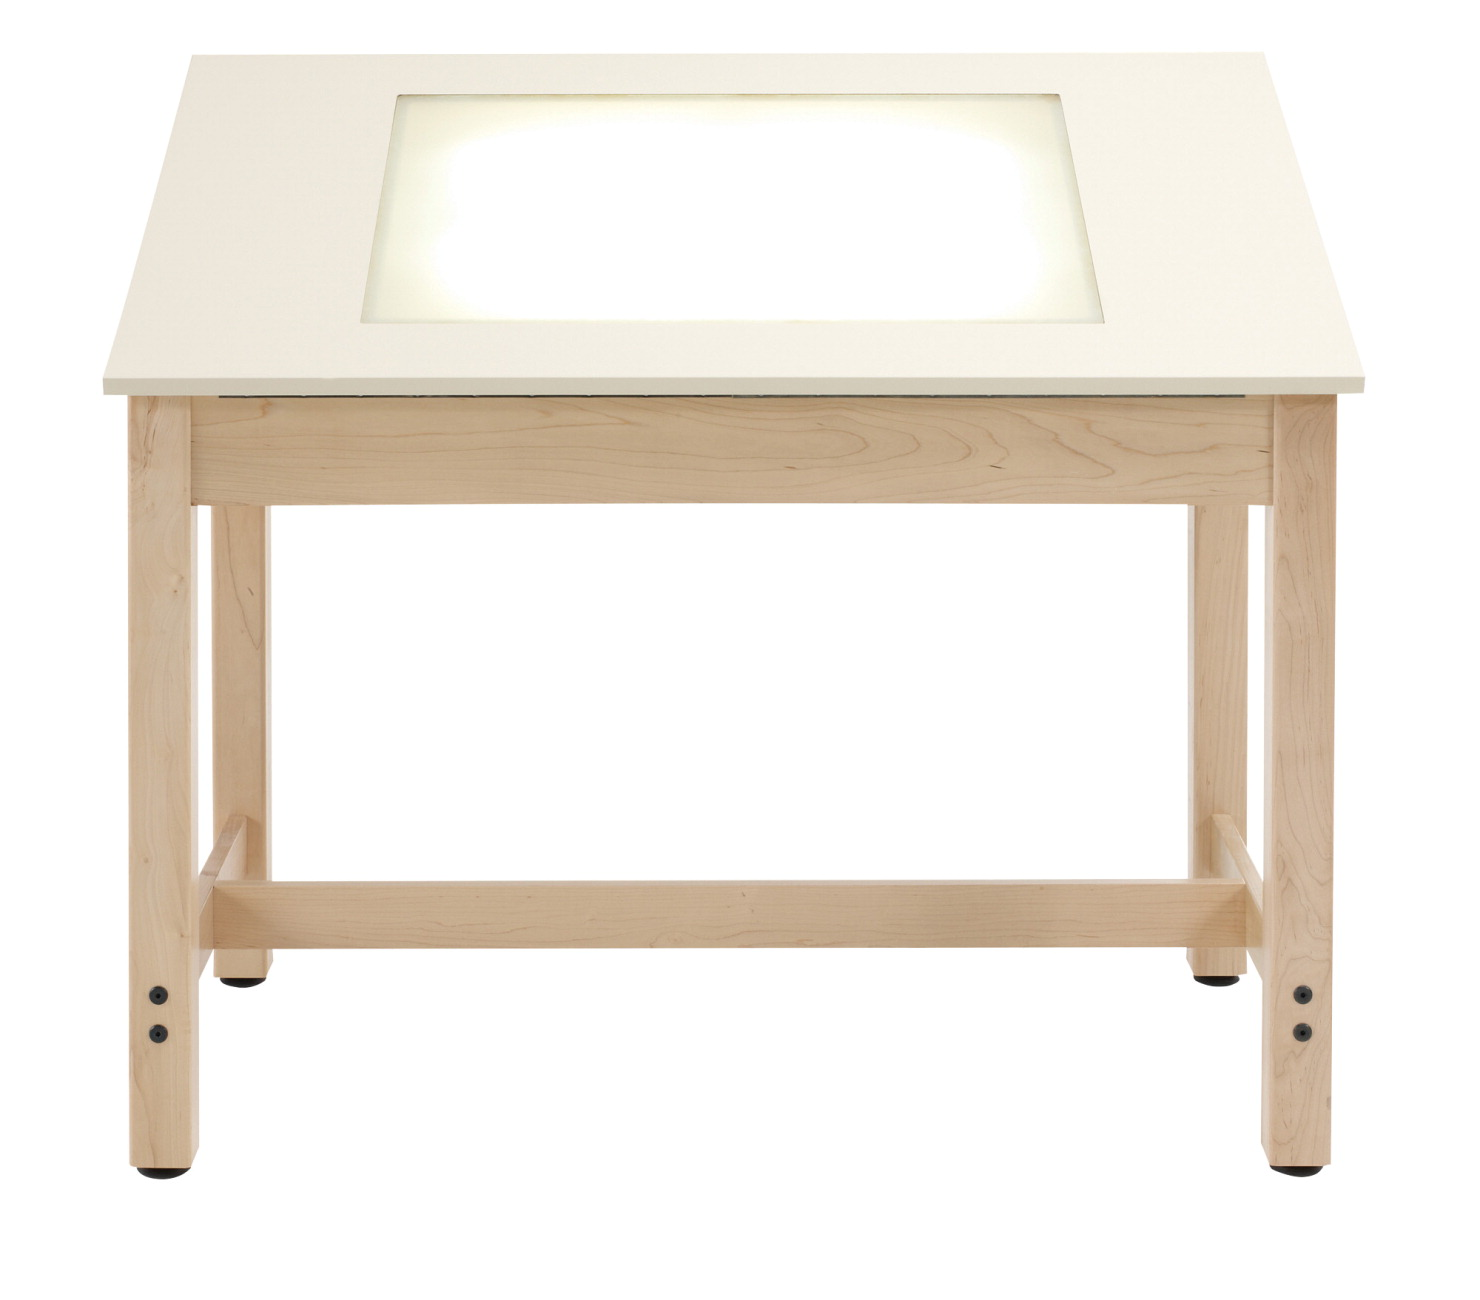 Diversified Woodcrafts Drafting Light Table, 44 x 24 x 39-3/4, Maple